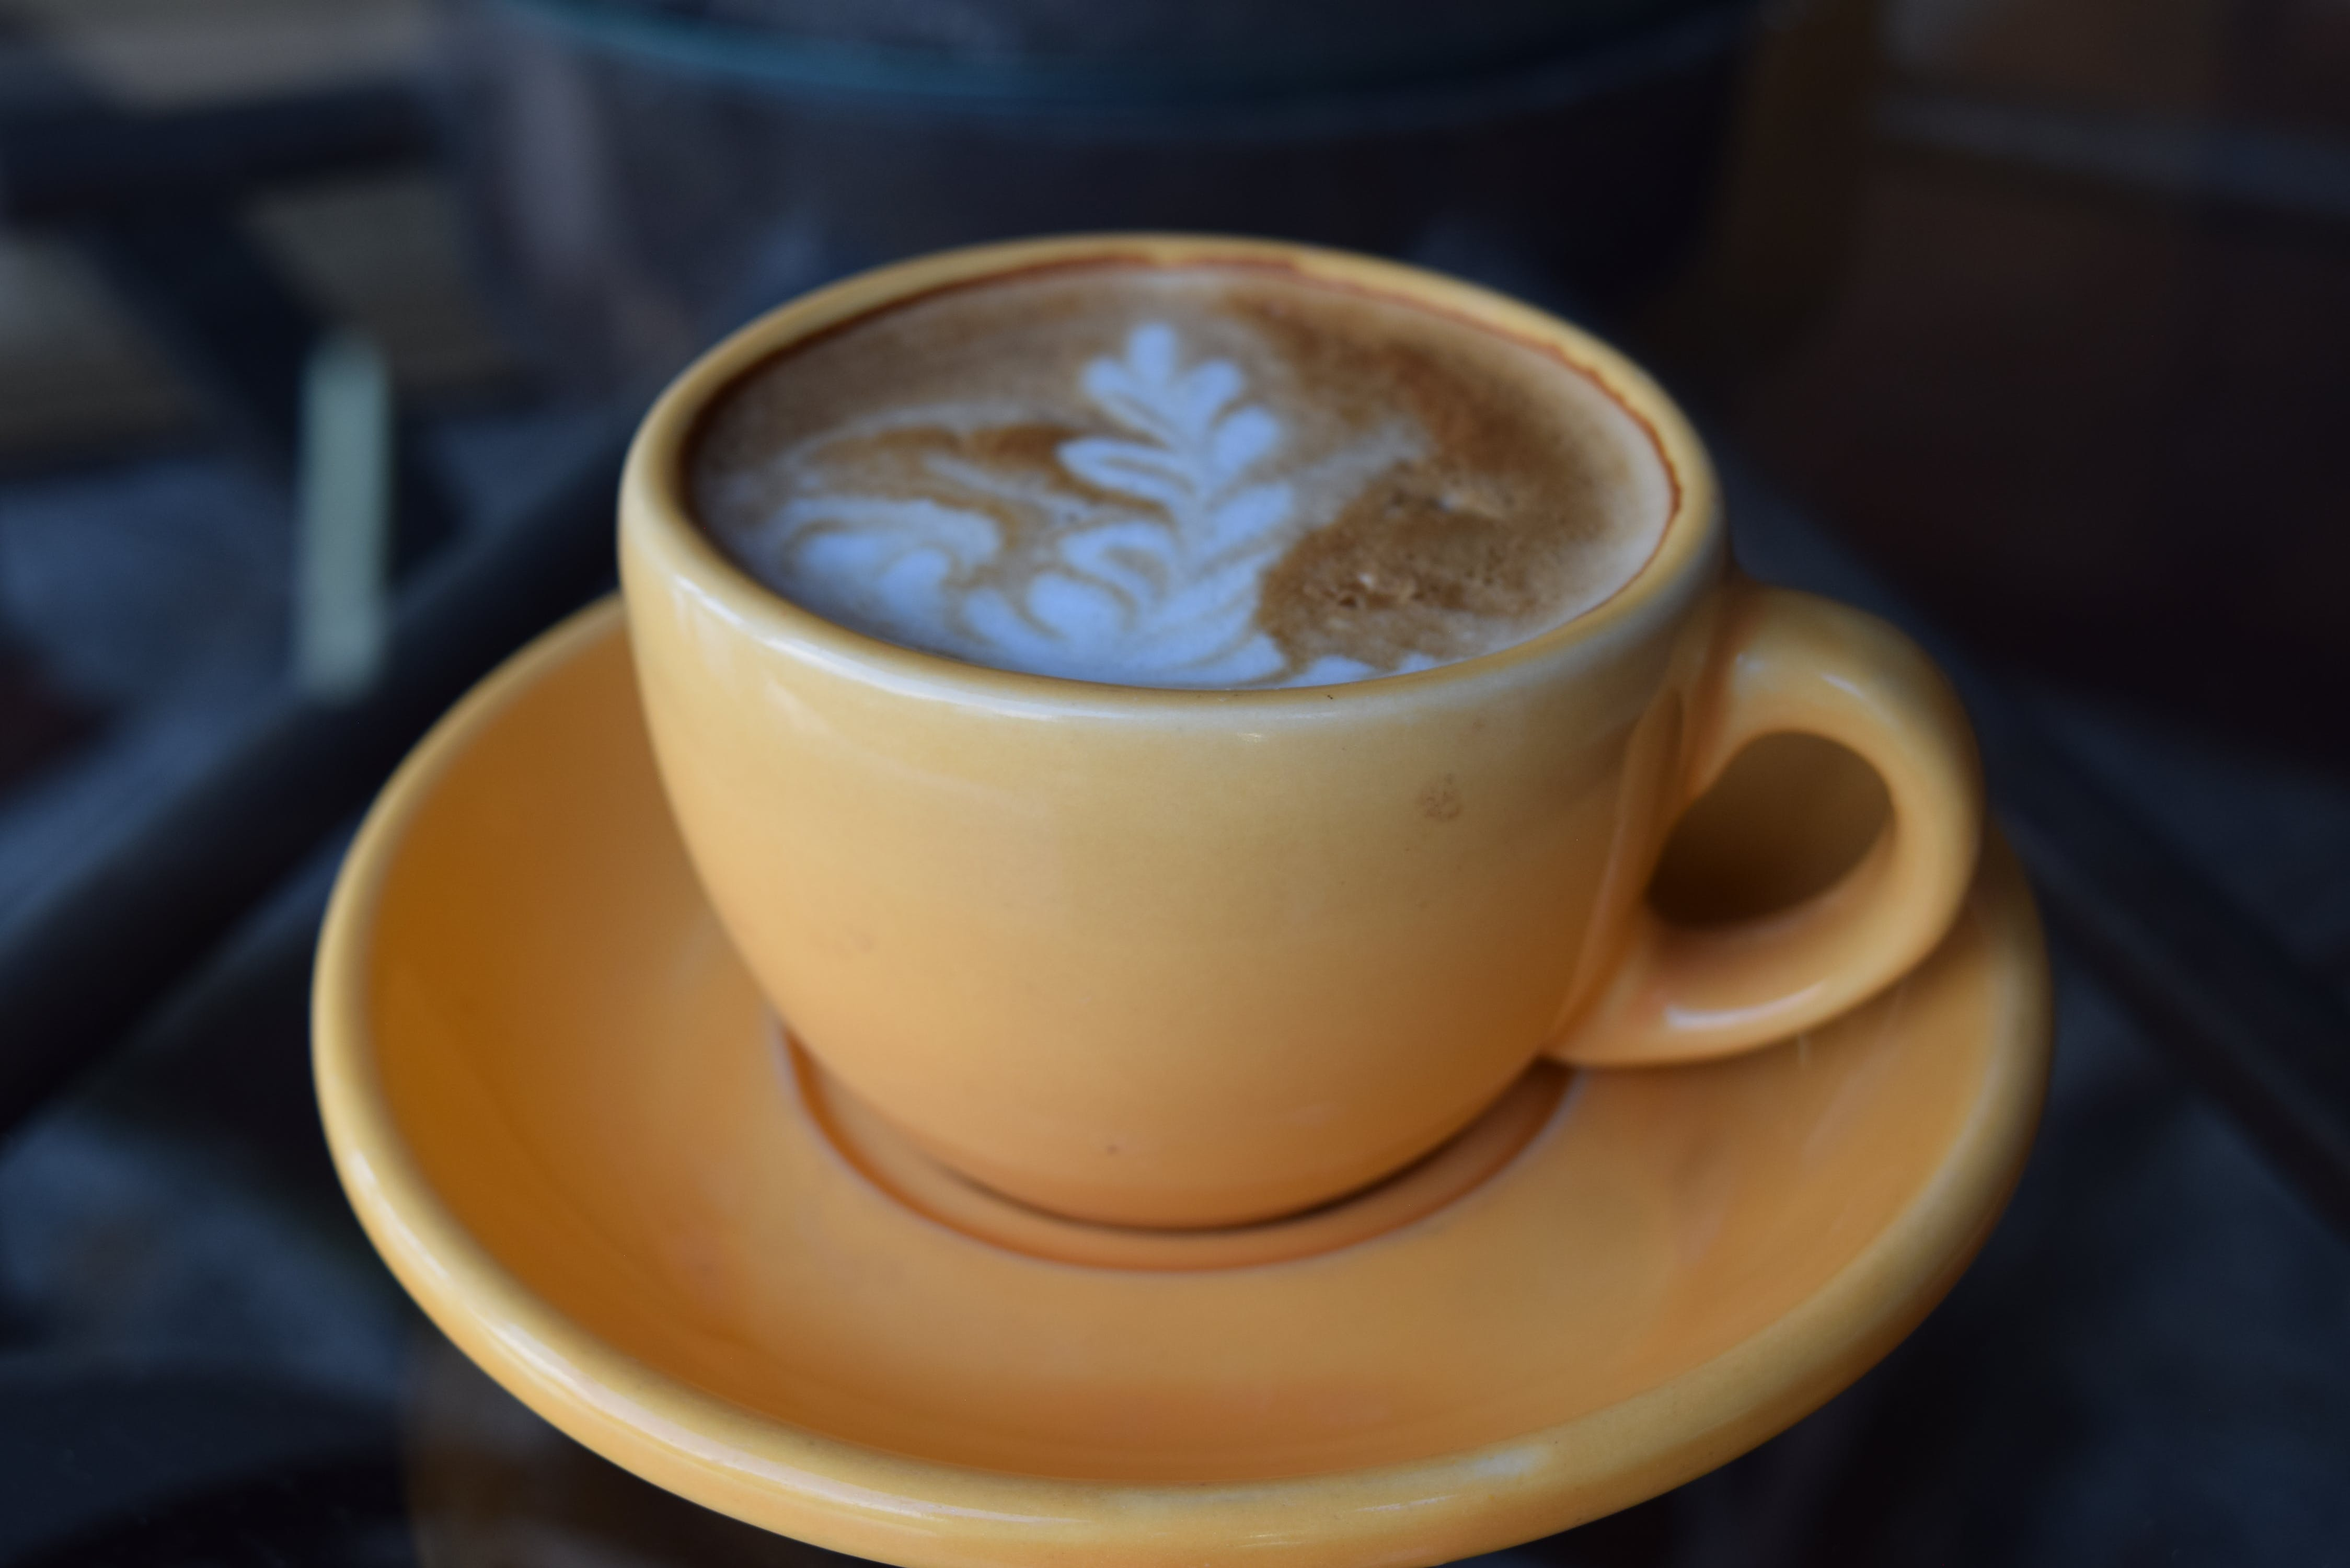 Coffee Latte on Brown Ceramic Cup and Platter